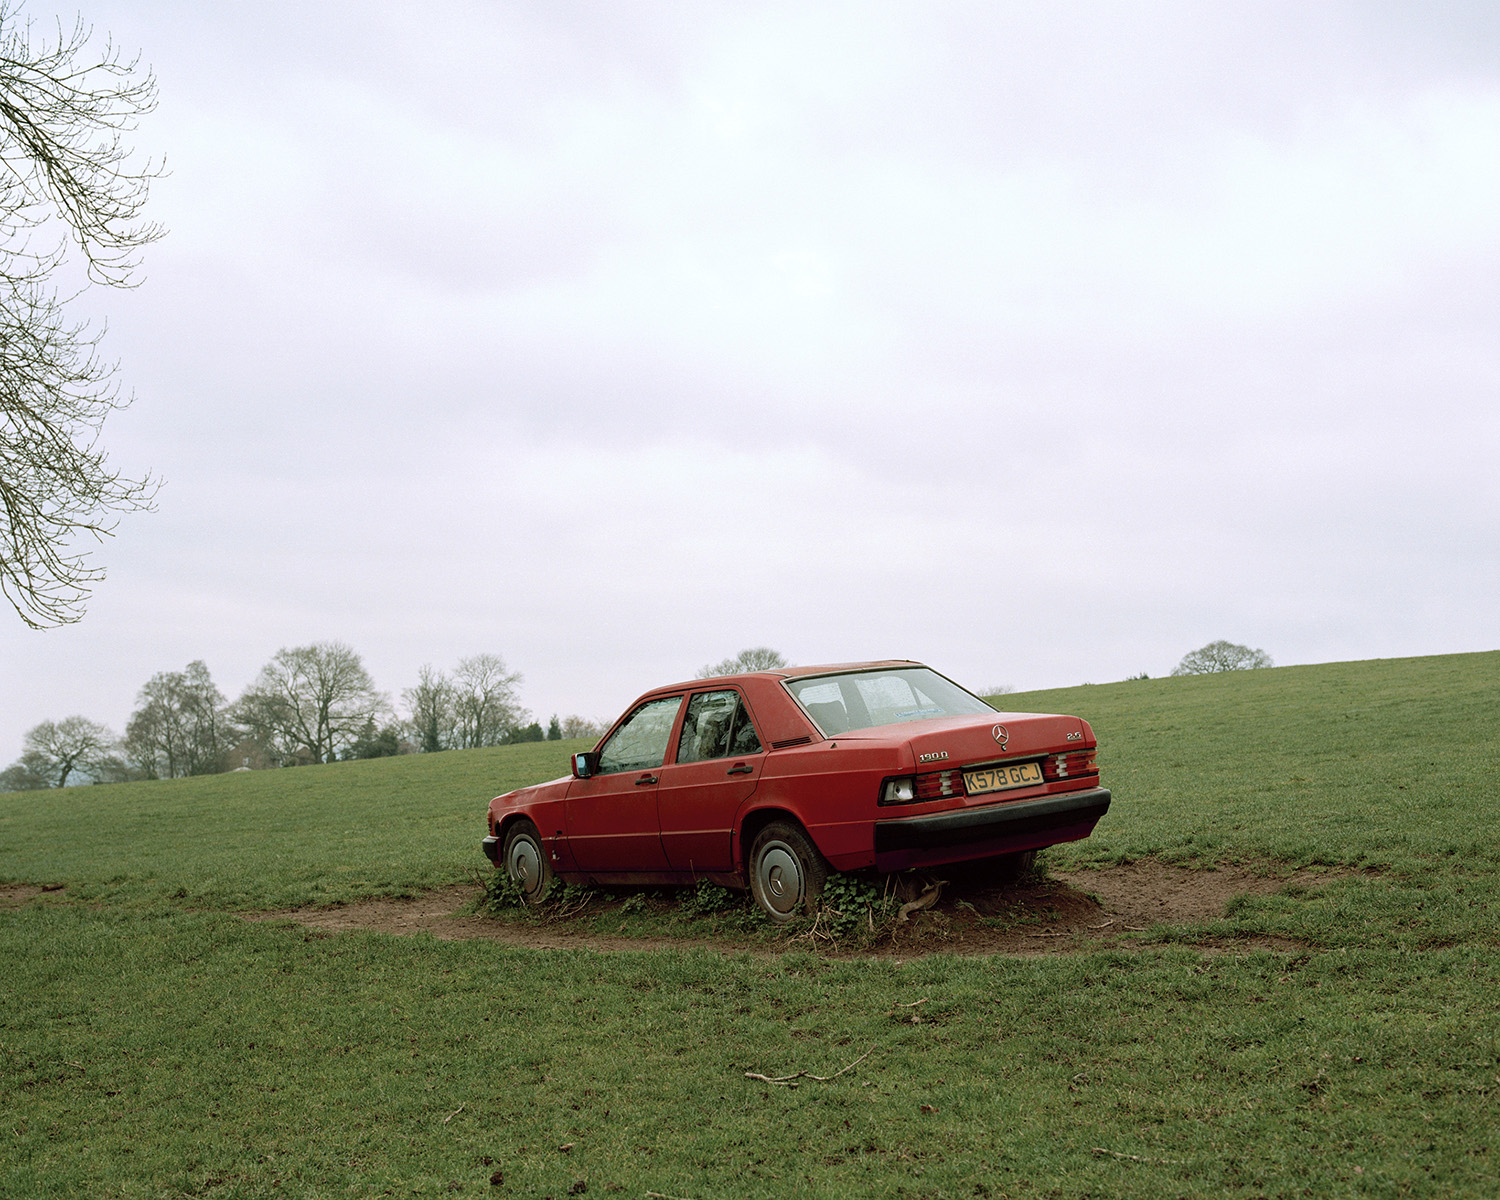 Photograph of an old red Mercedes in a field